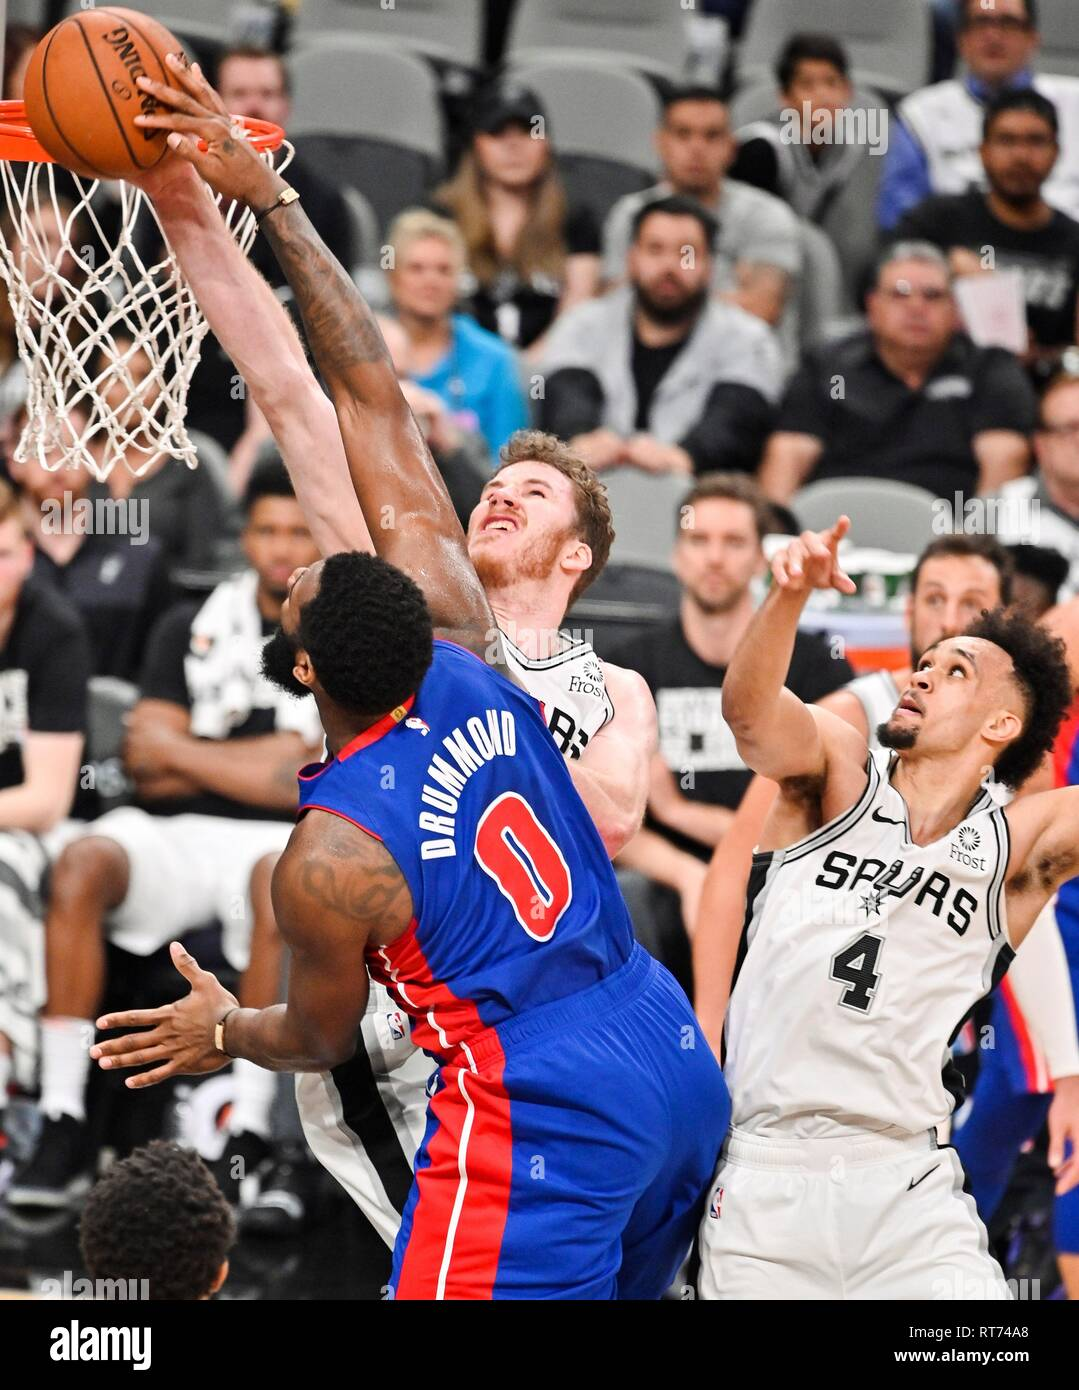 San Antonio, Texas, USA. 27th Feb, 2019. Jakob Poeltl (back) of the San Antonio Spurs blocks a slam dunk attempt by Andre Drummond (L) of the Detroit Pistons as Spurs guard Derrick White looks on during an NBA basketball game against the Detroit Pistons, in San Antonio, Texas, USA, 27 February, 2019. Credit: Darren Abate/EFE/Alamy Live News Stock Photo